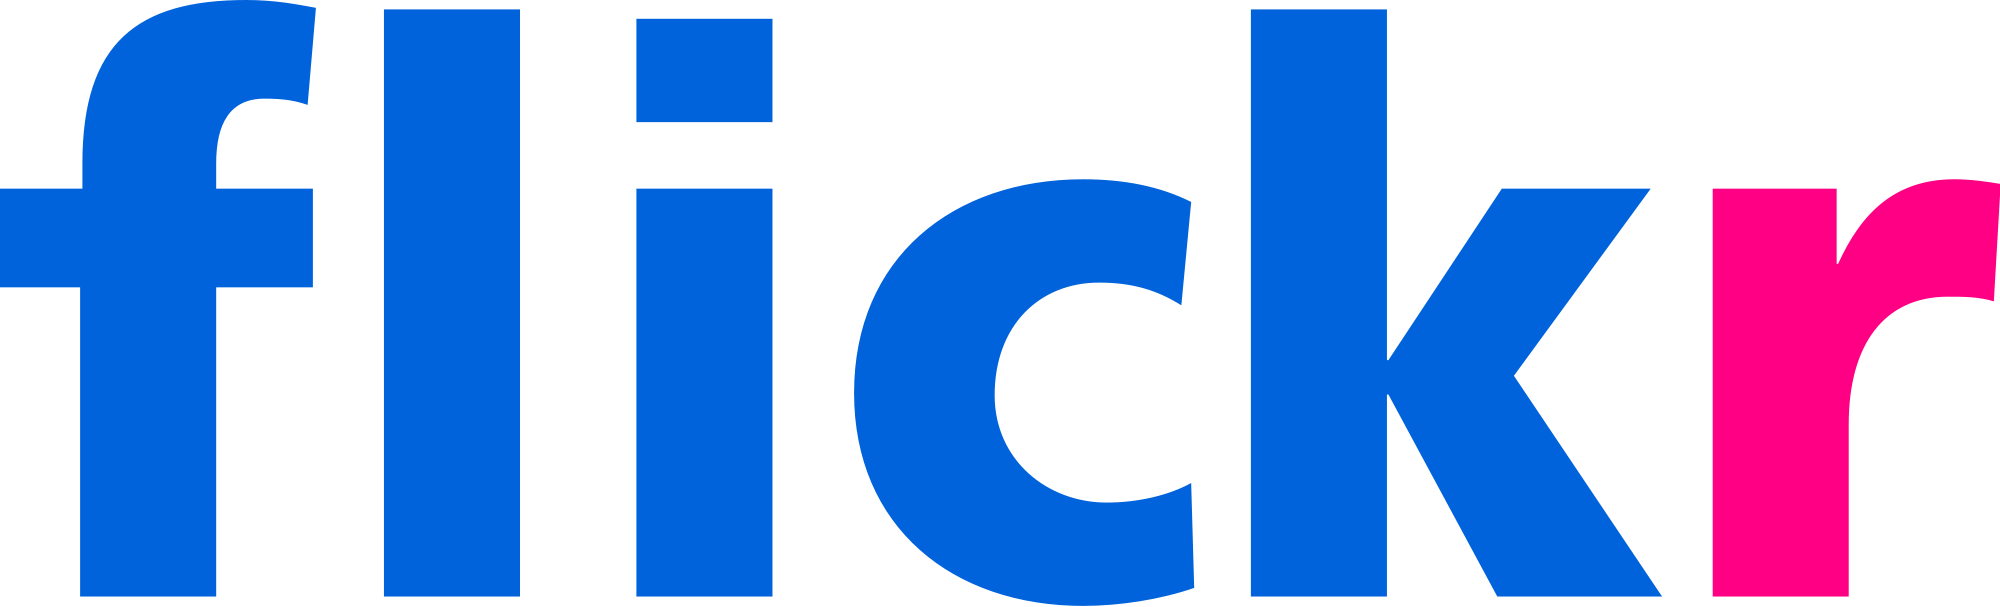 File:Flickr logo.png - Wikimedia Commons